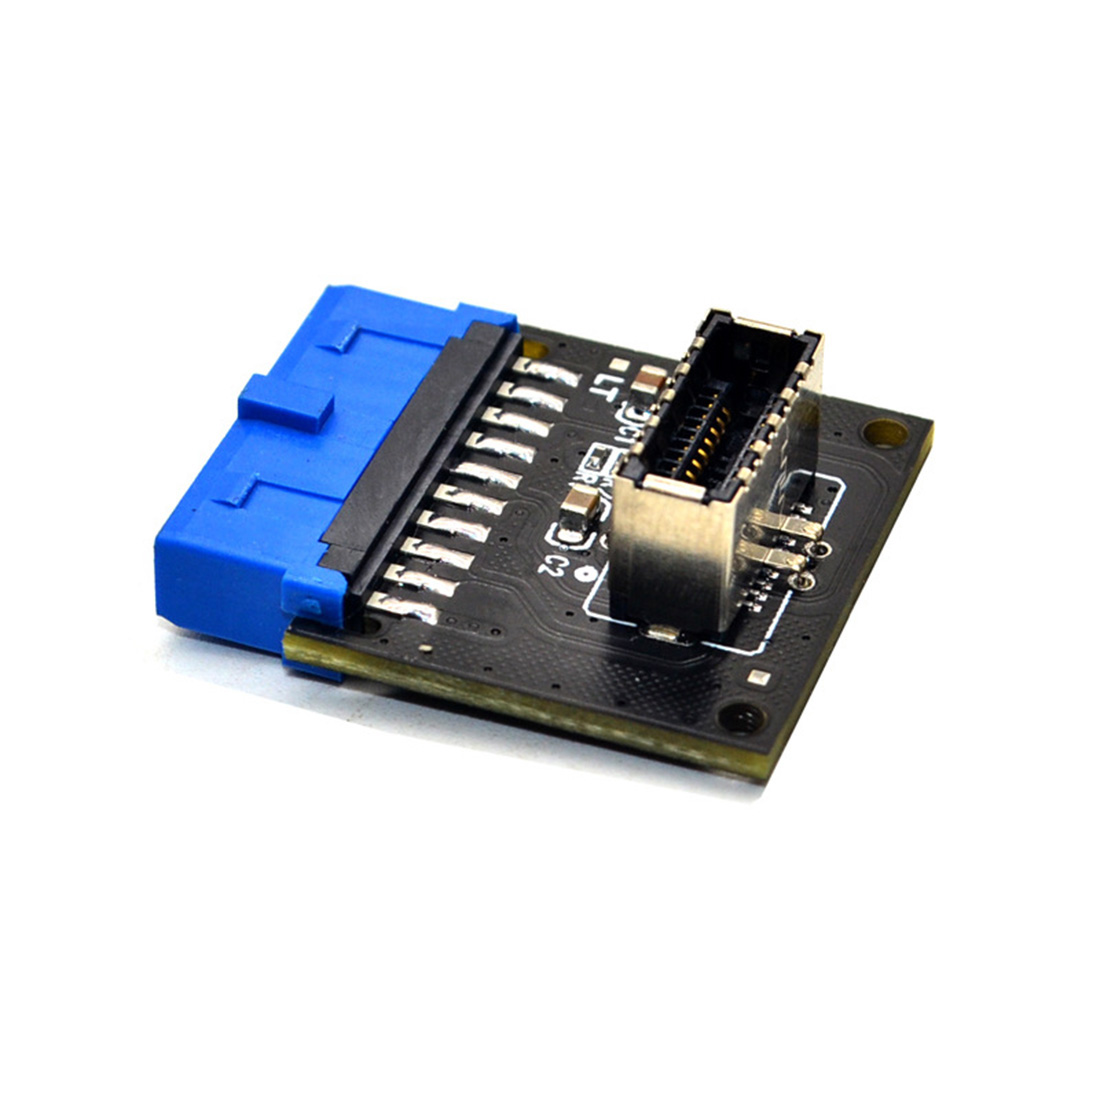 Type C USB3.1 Front Panel Socket <font><b>USB</b></font> <font><b>3.0</b></font> 19 Pin to TYPE-E 20Pin Header Extension Adapter for ASUS <font><b>Motherboard</b></font> PC <font><b>Connector</b></font> Riser image